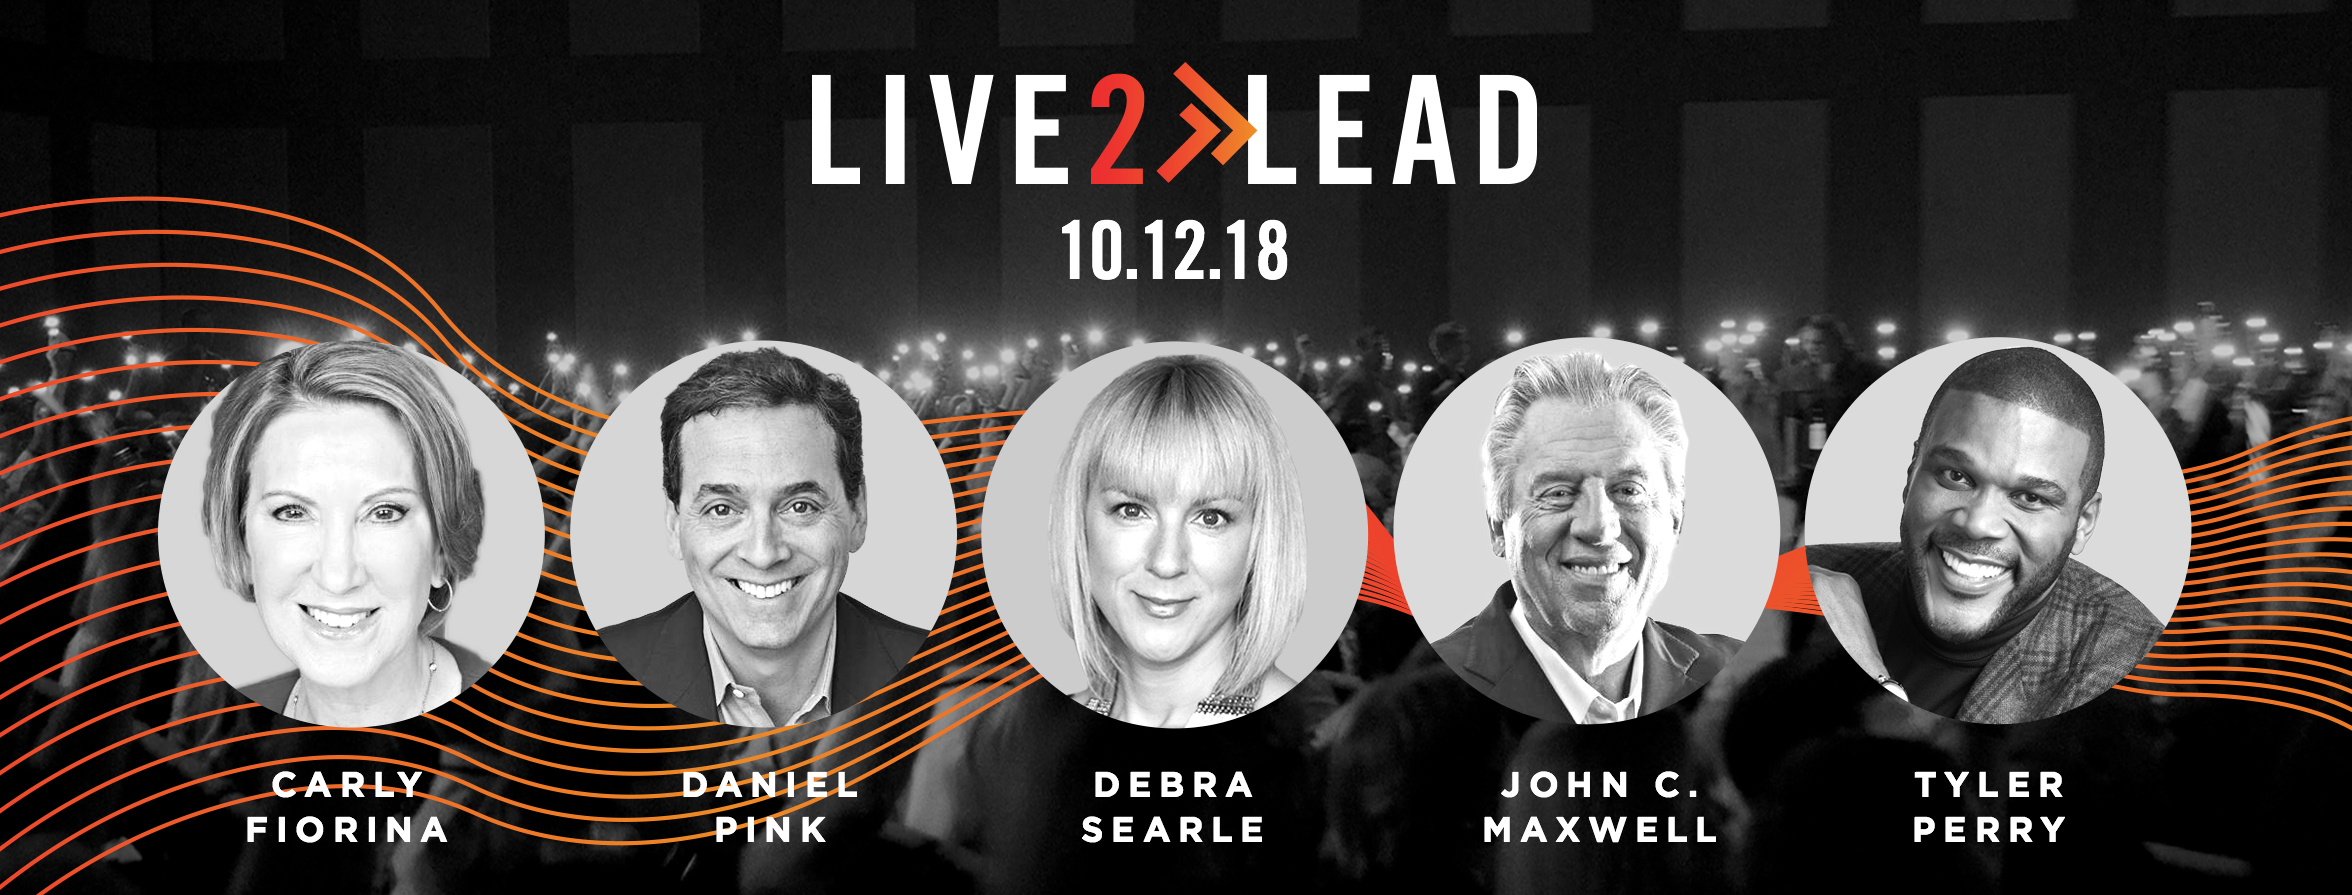 live2lead, Jamie Chapman, Coaching Crossroads, Peppershock Media